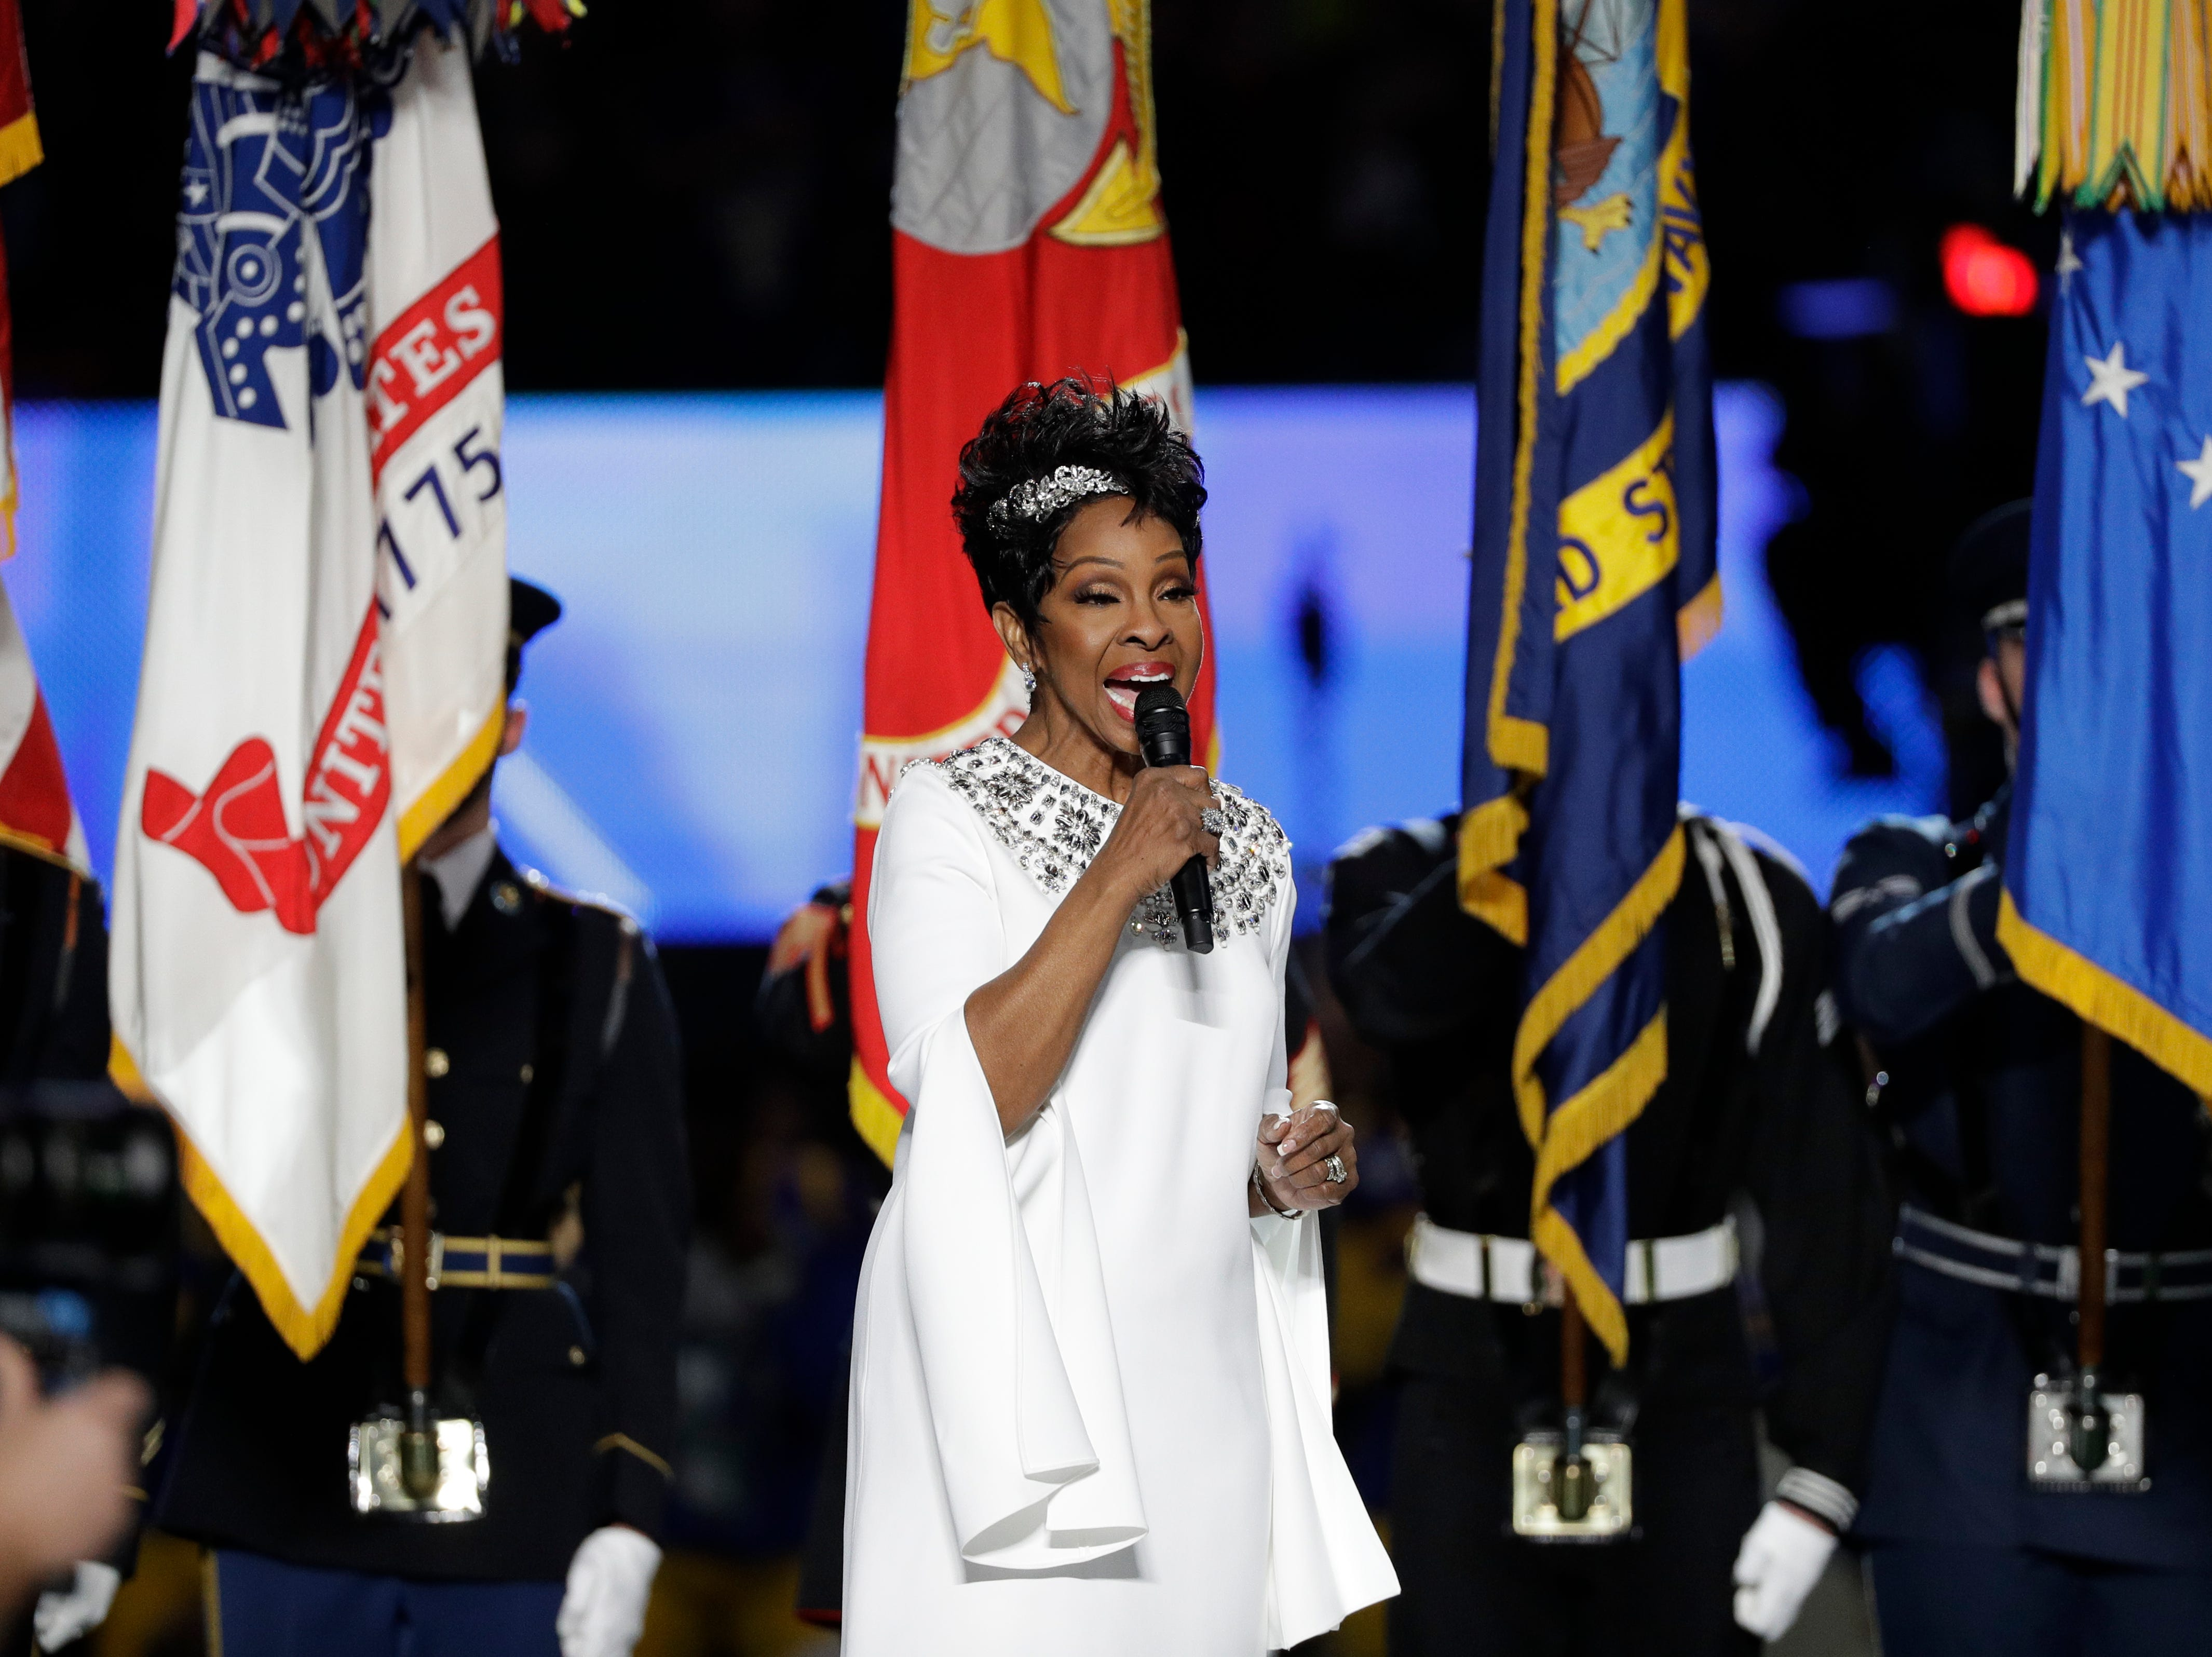 Gladys Knight sings the national anthem before the game.